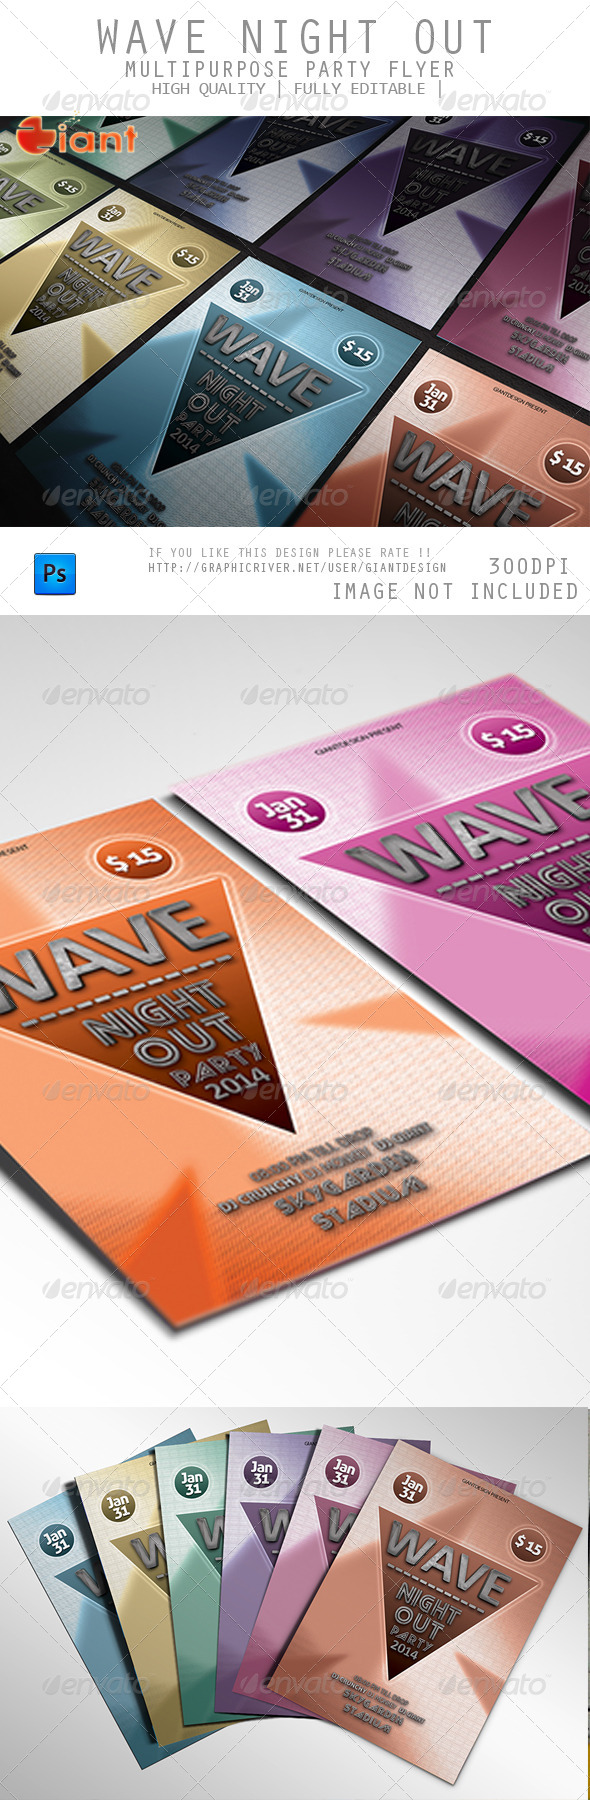 GraphicRiver Wave Night Out Multipurpose Party Flyer 6290653